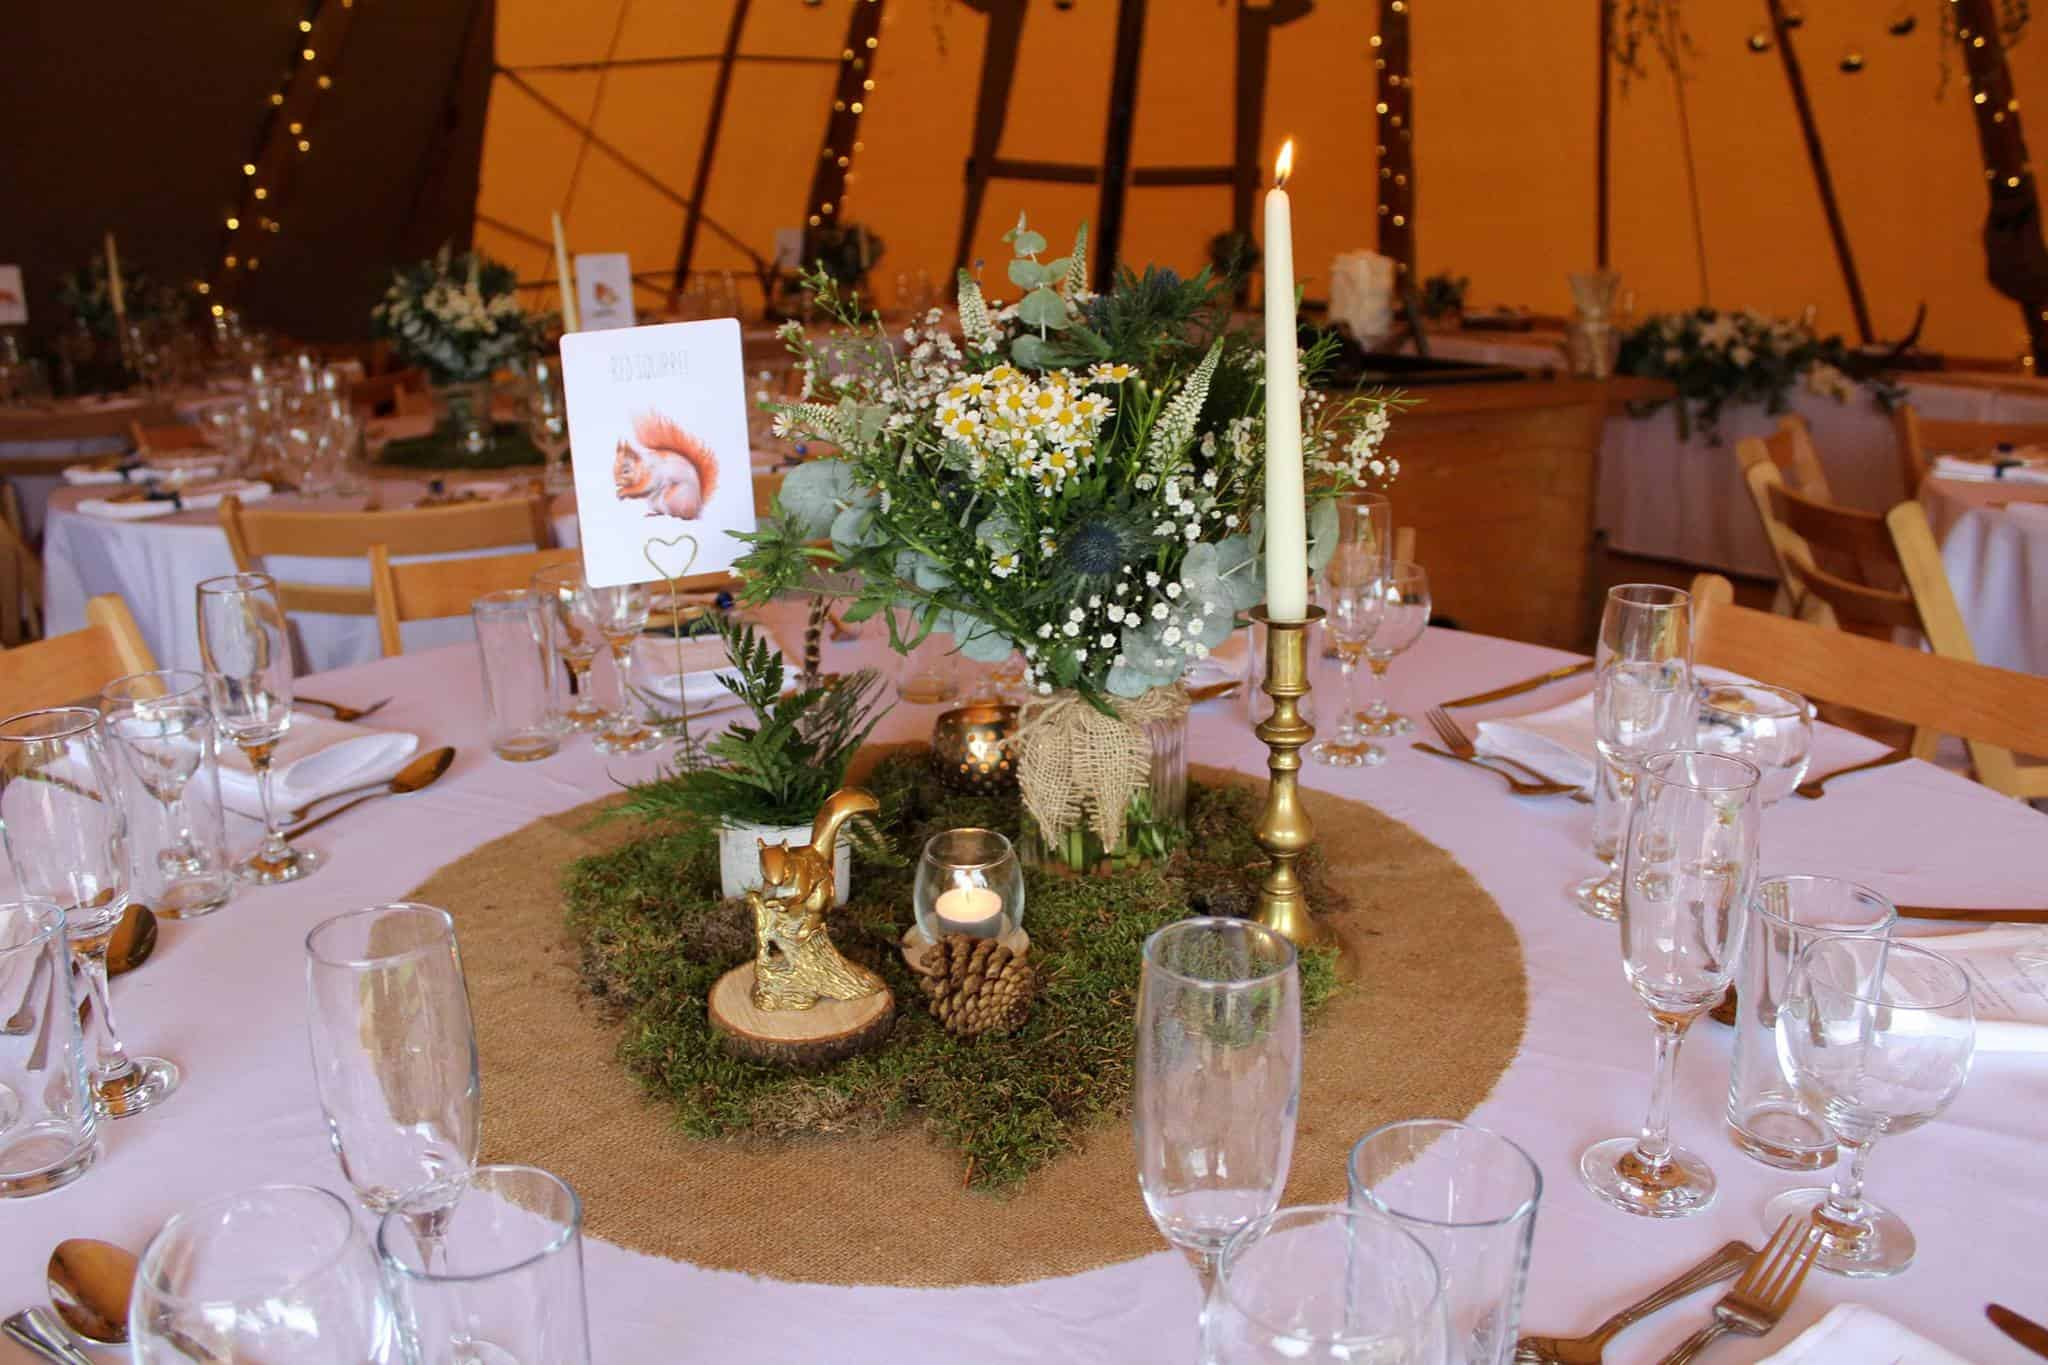 Squiral table - Woodland themed styling by The Rustic Wedding Company